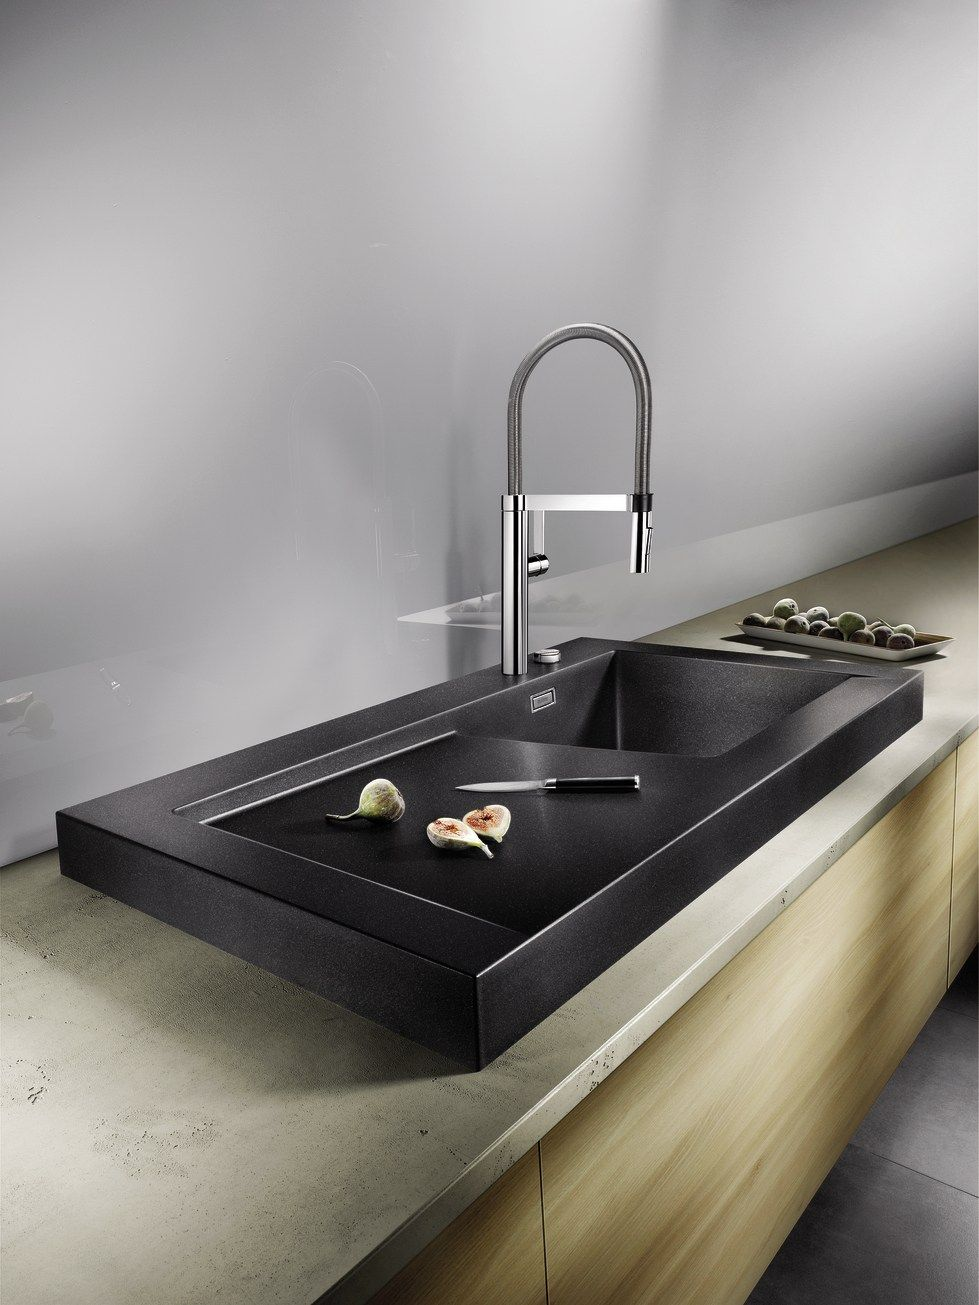 Lovely Countertop Silgranit® Sink With Drainer BLANCO MODEX M 60 By Blanco